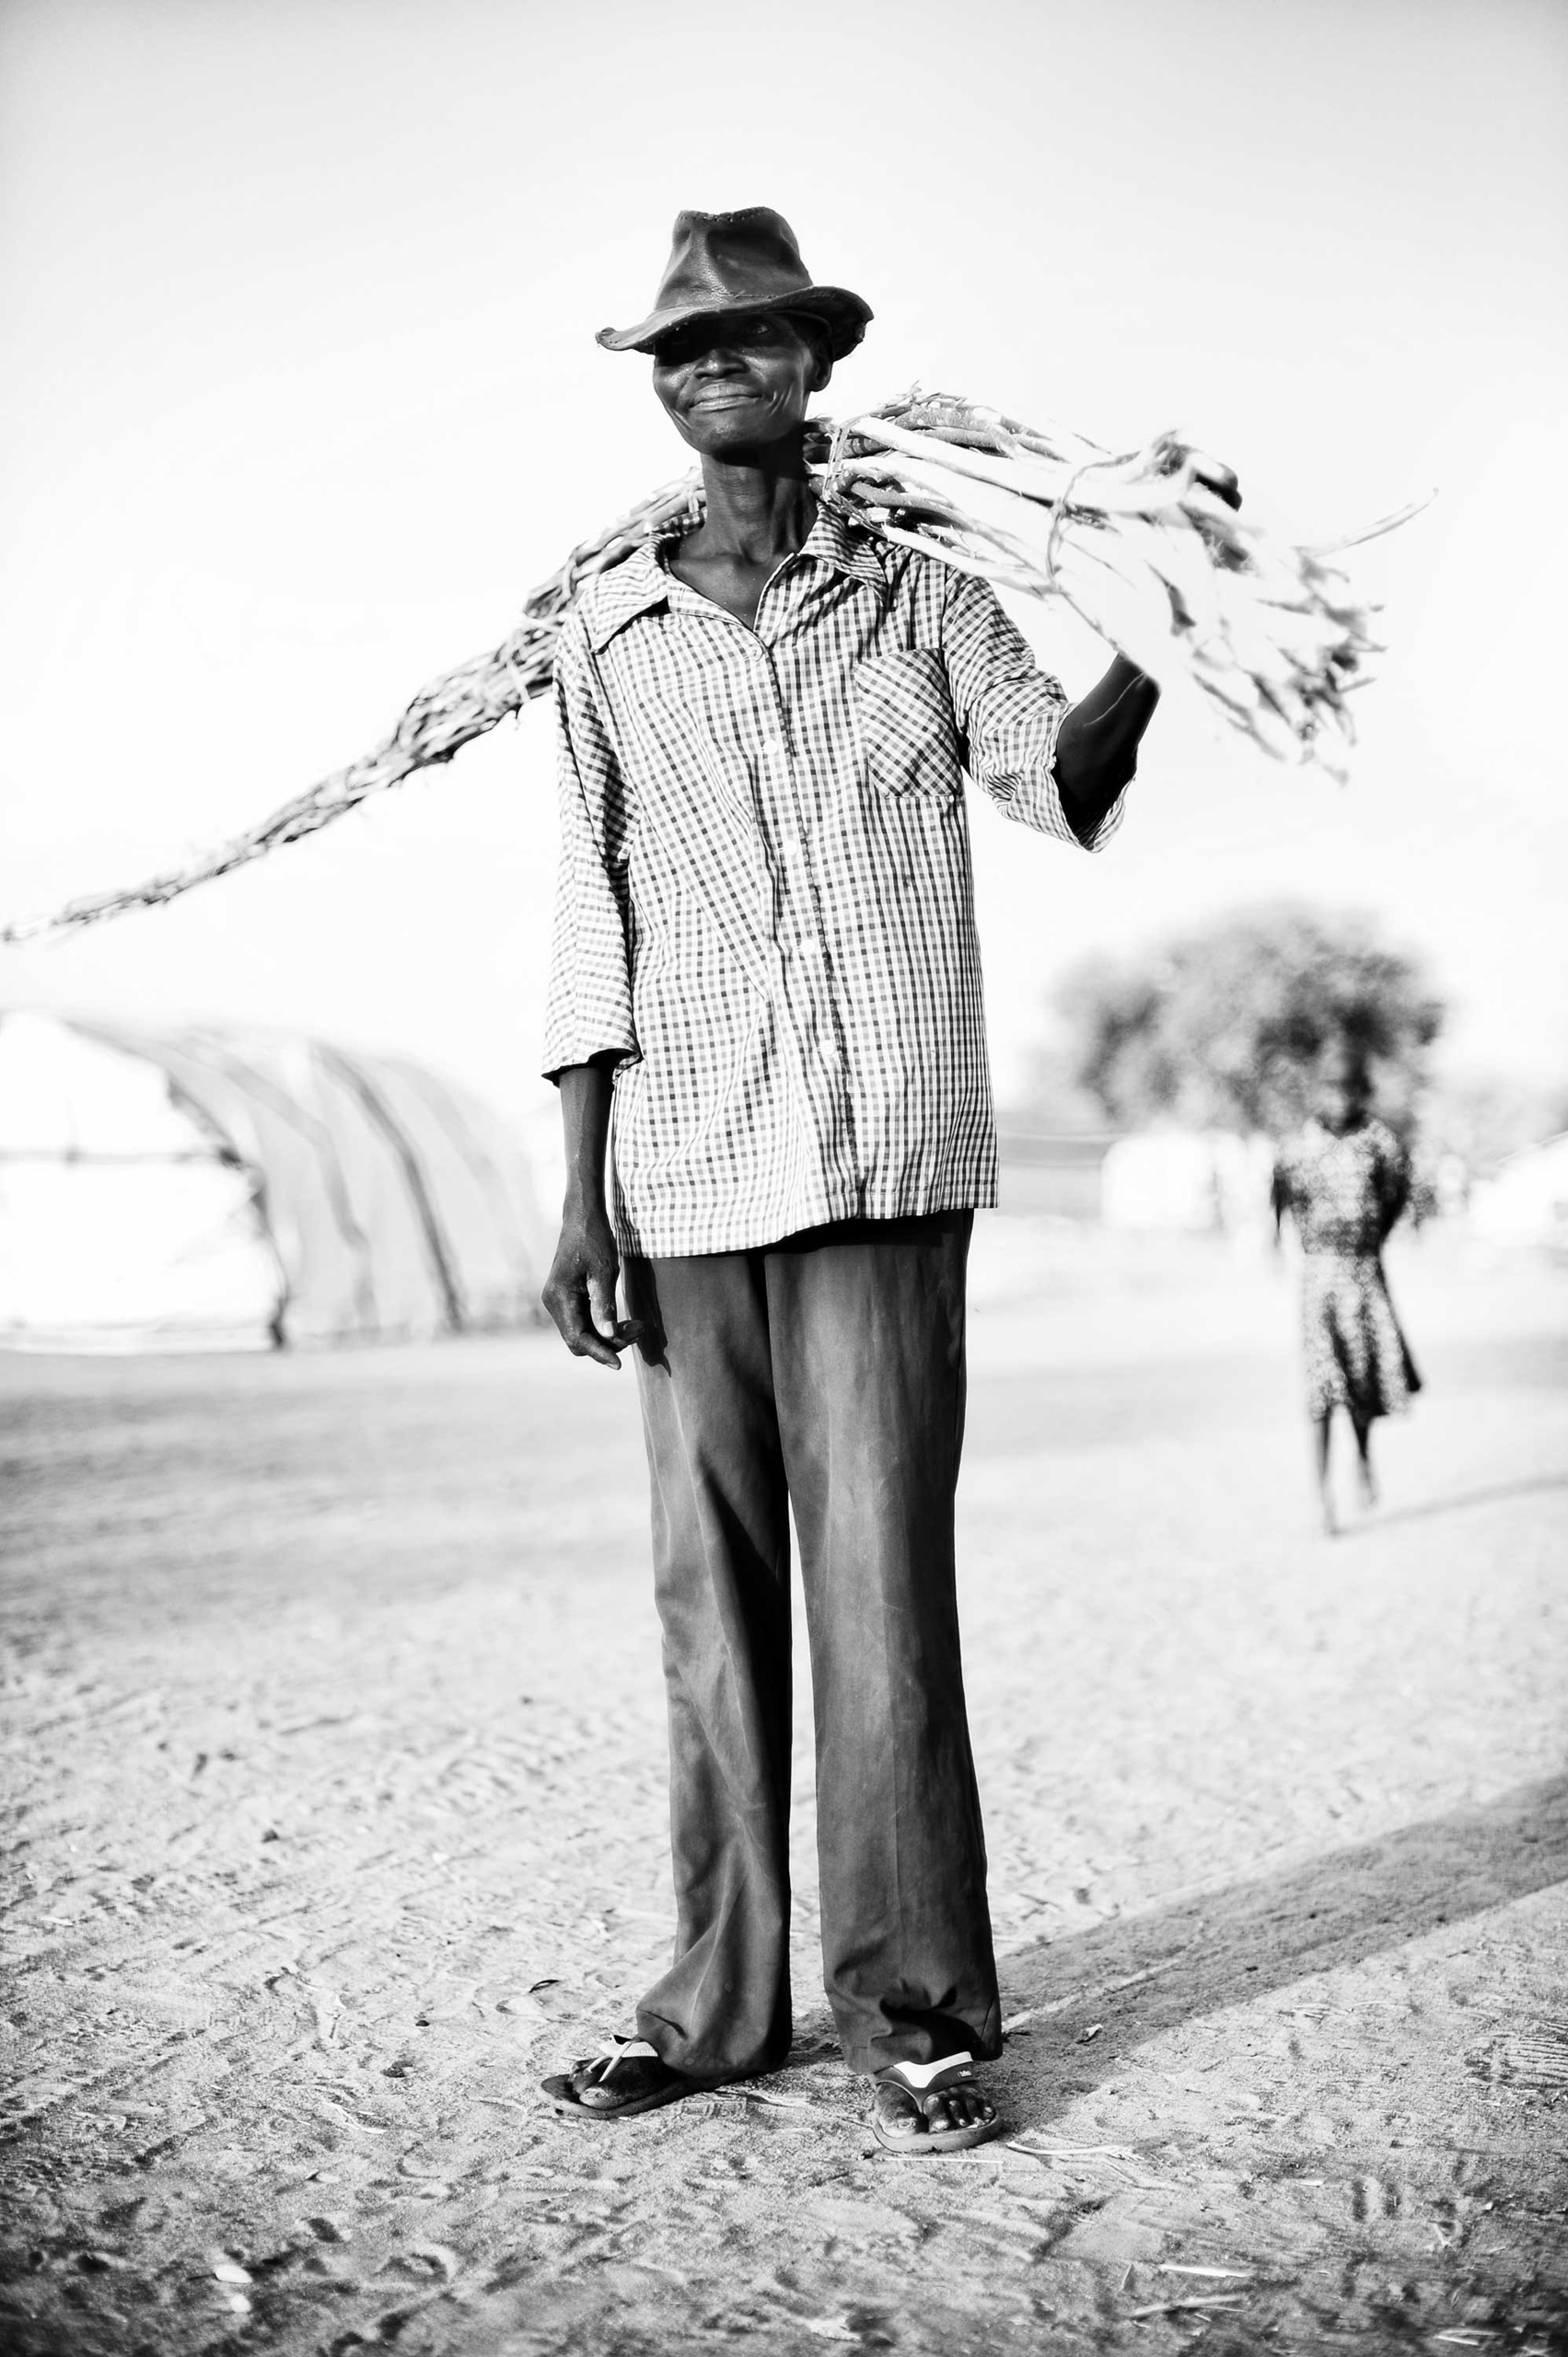 Mingkamann refugee camp, Lakes state, South Sudan: Juma, 38, fled to Mingkaman because of clashes in the Jonglei state. He lives in the refugee camp with his wife. He hopes to build a house with wooden branches and mud, because they no longer want to live in a tent.